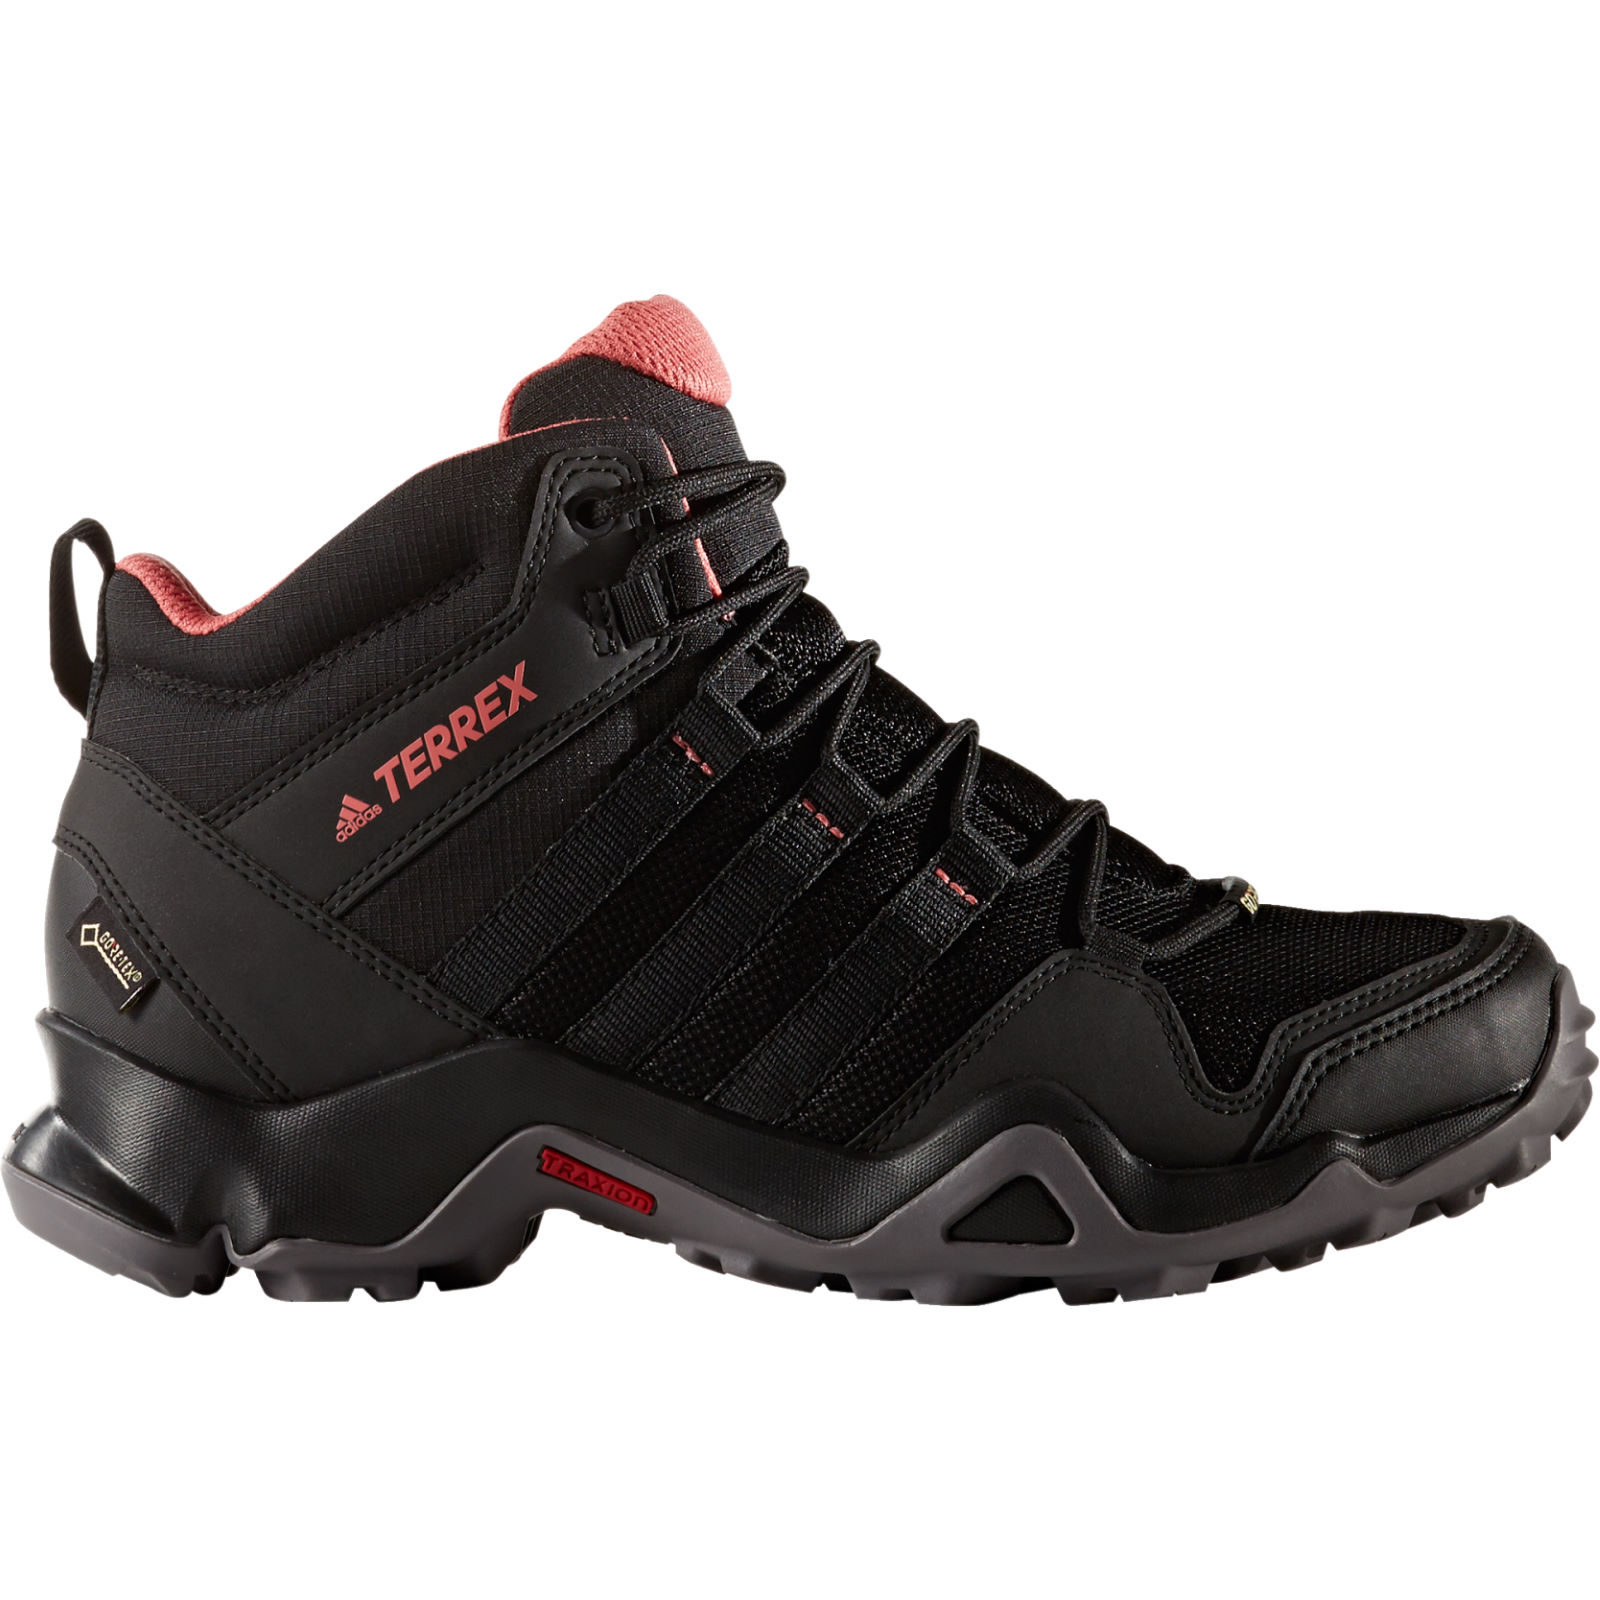 wiggle adidas women 39 s terrex ax2r mid gtx shoes fast hike. Black Bedroom Furniture Sets. Home Design Ideas